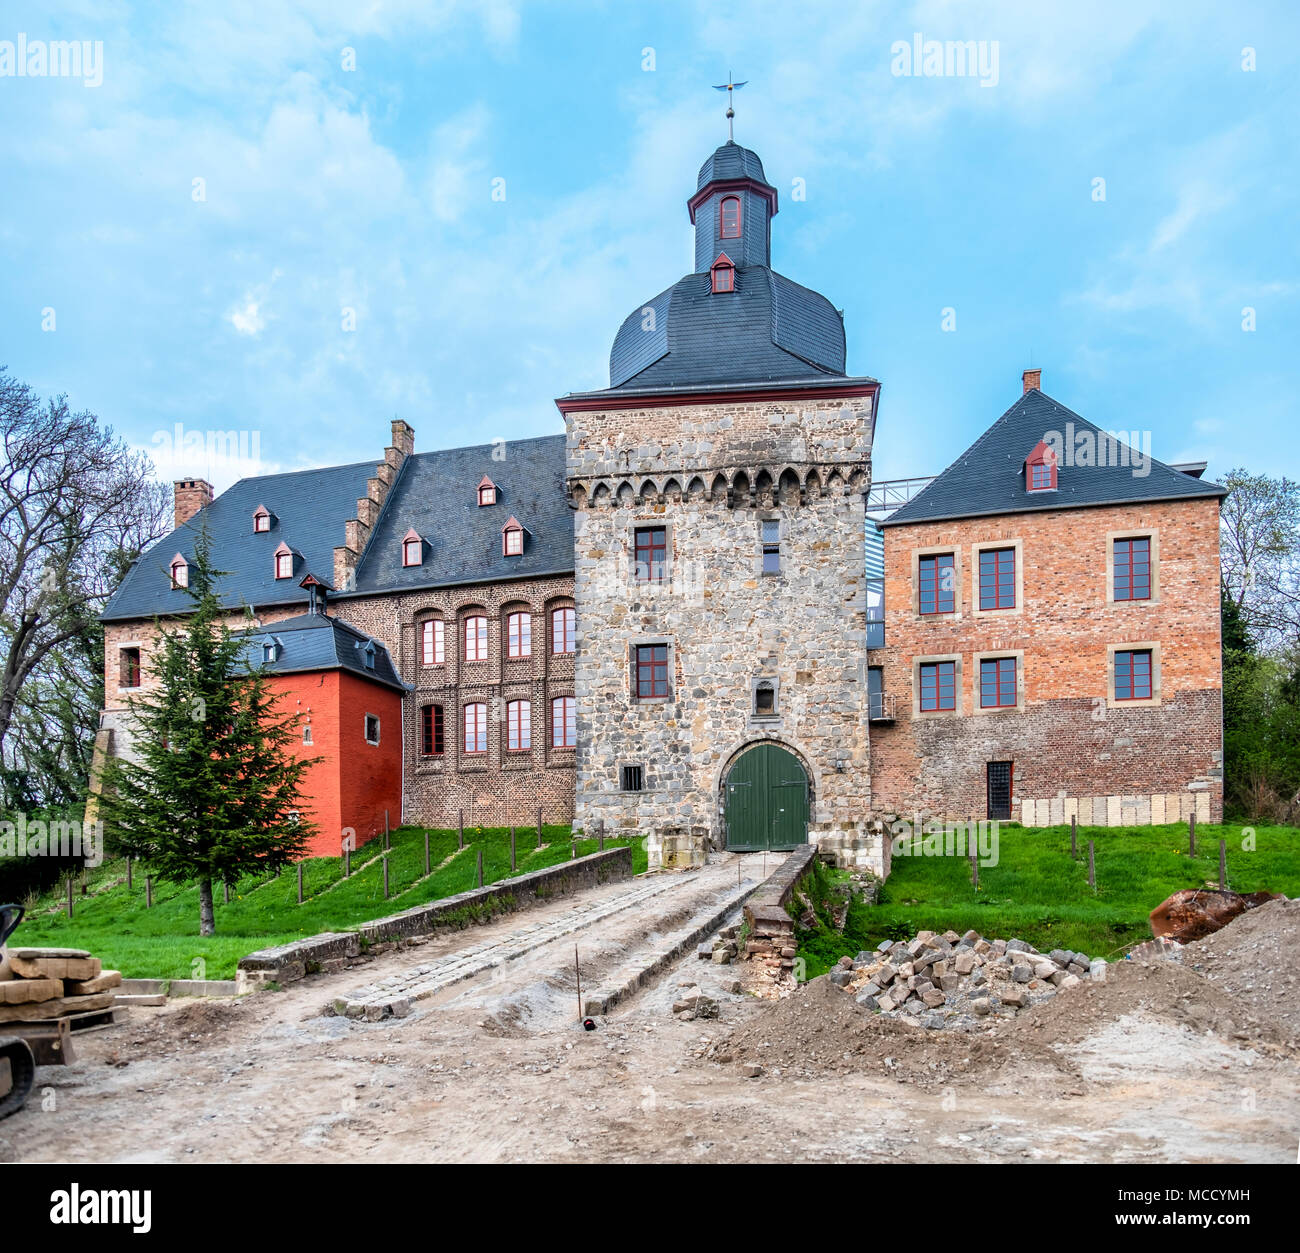 The historic old town Liedberg in NRW, Germany. - Stock Image